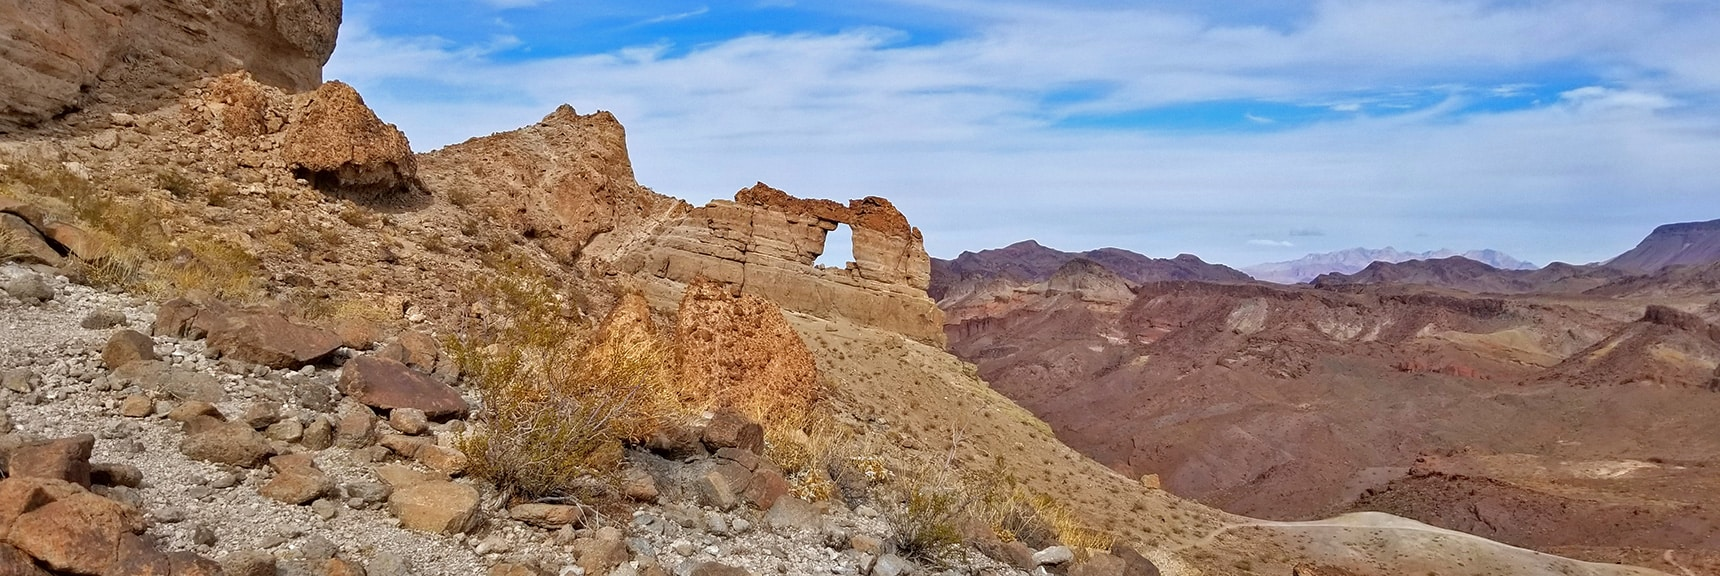 Liberty Bell Arch. Muddy Mountains in Far Distance to Right. | Arizona Hot Spring | Liberty Bell Arch | Lake Mead National Recreation Area, Arizona